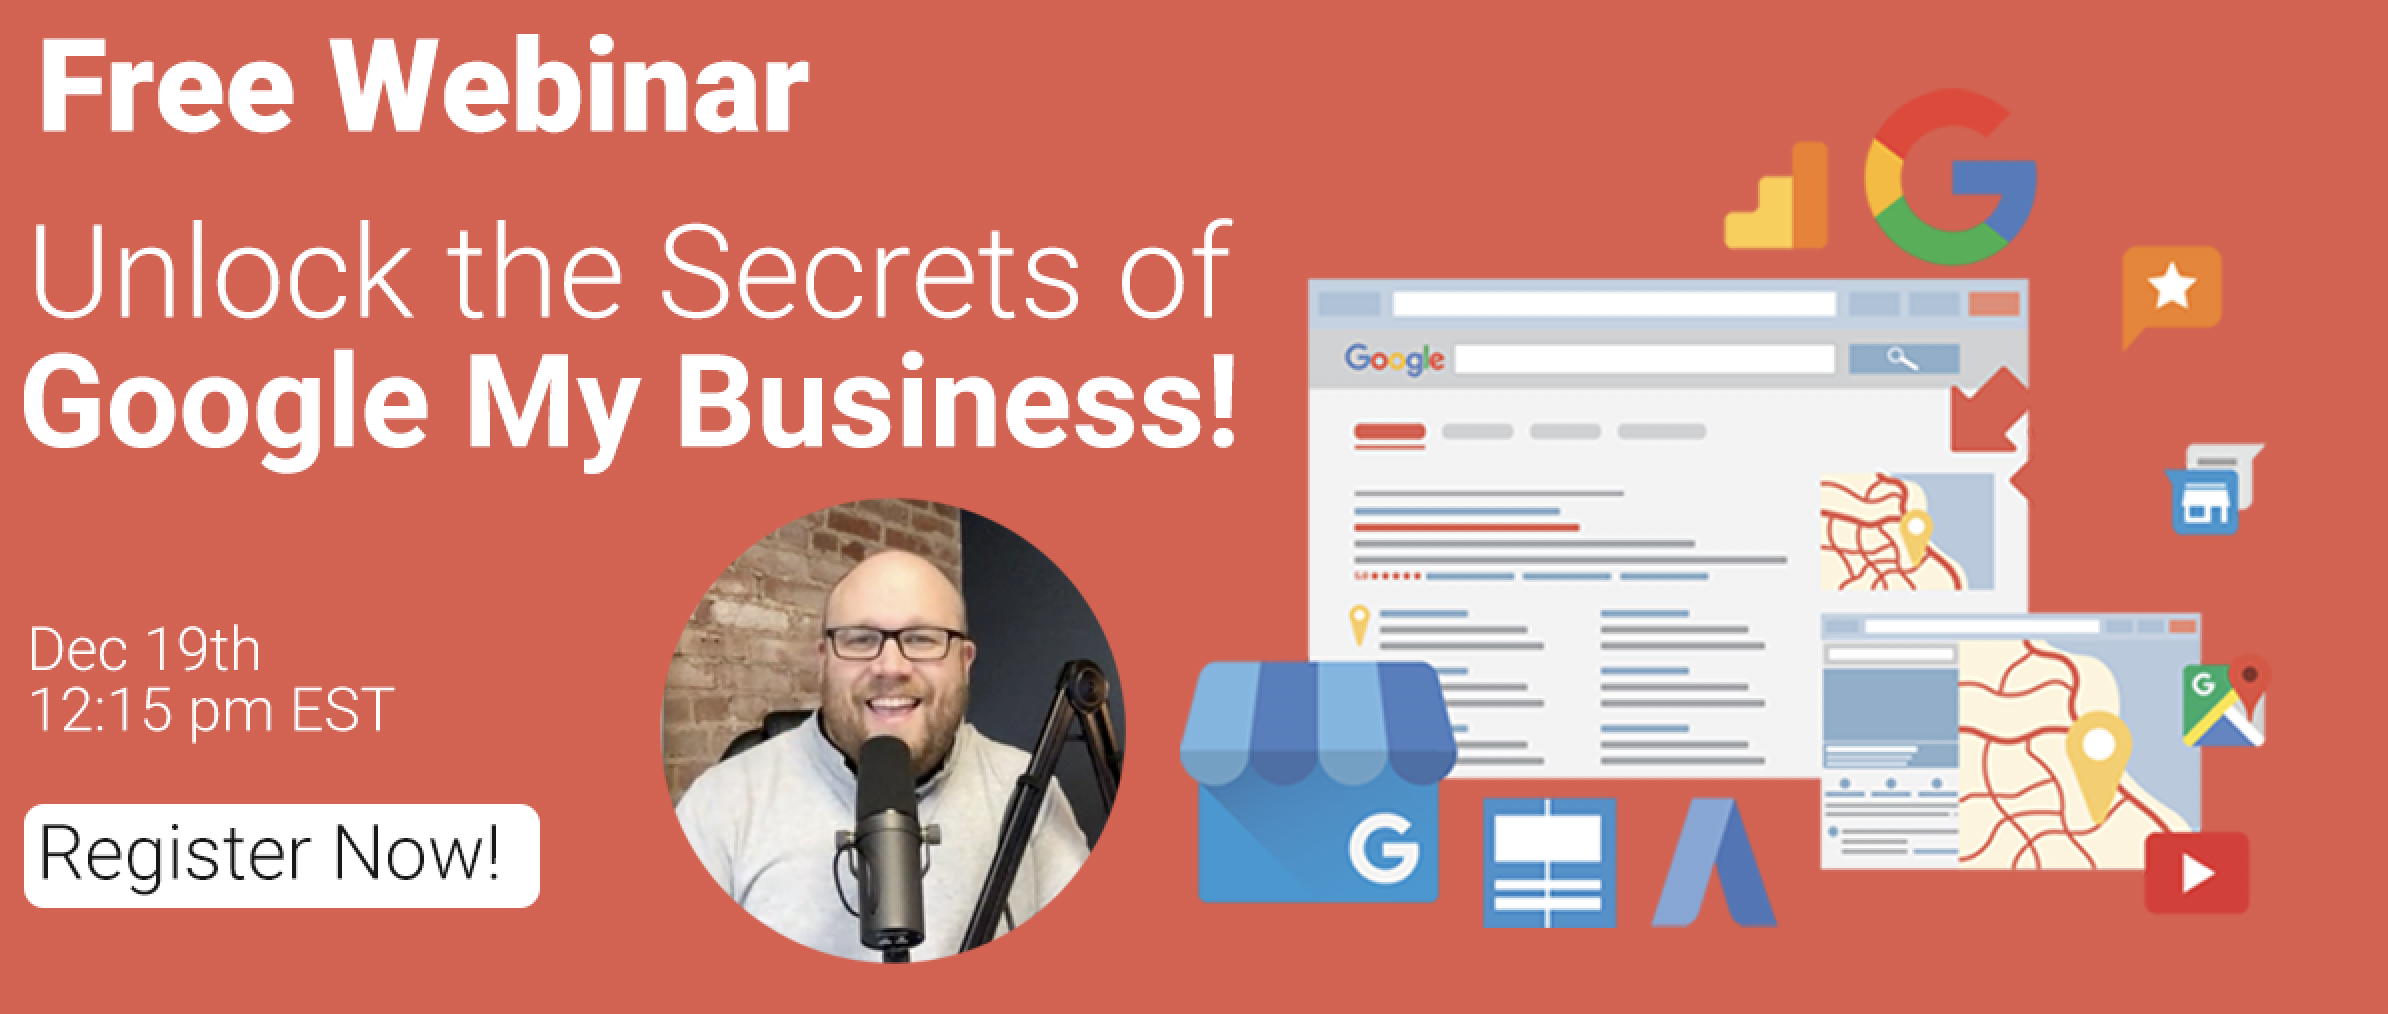 Unlock The Secrets of Google My Business